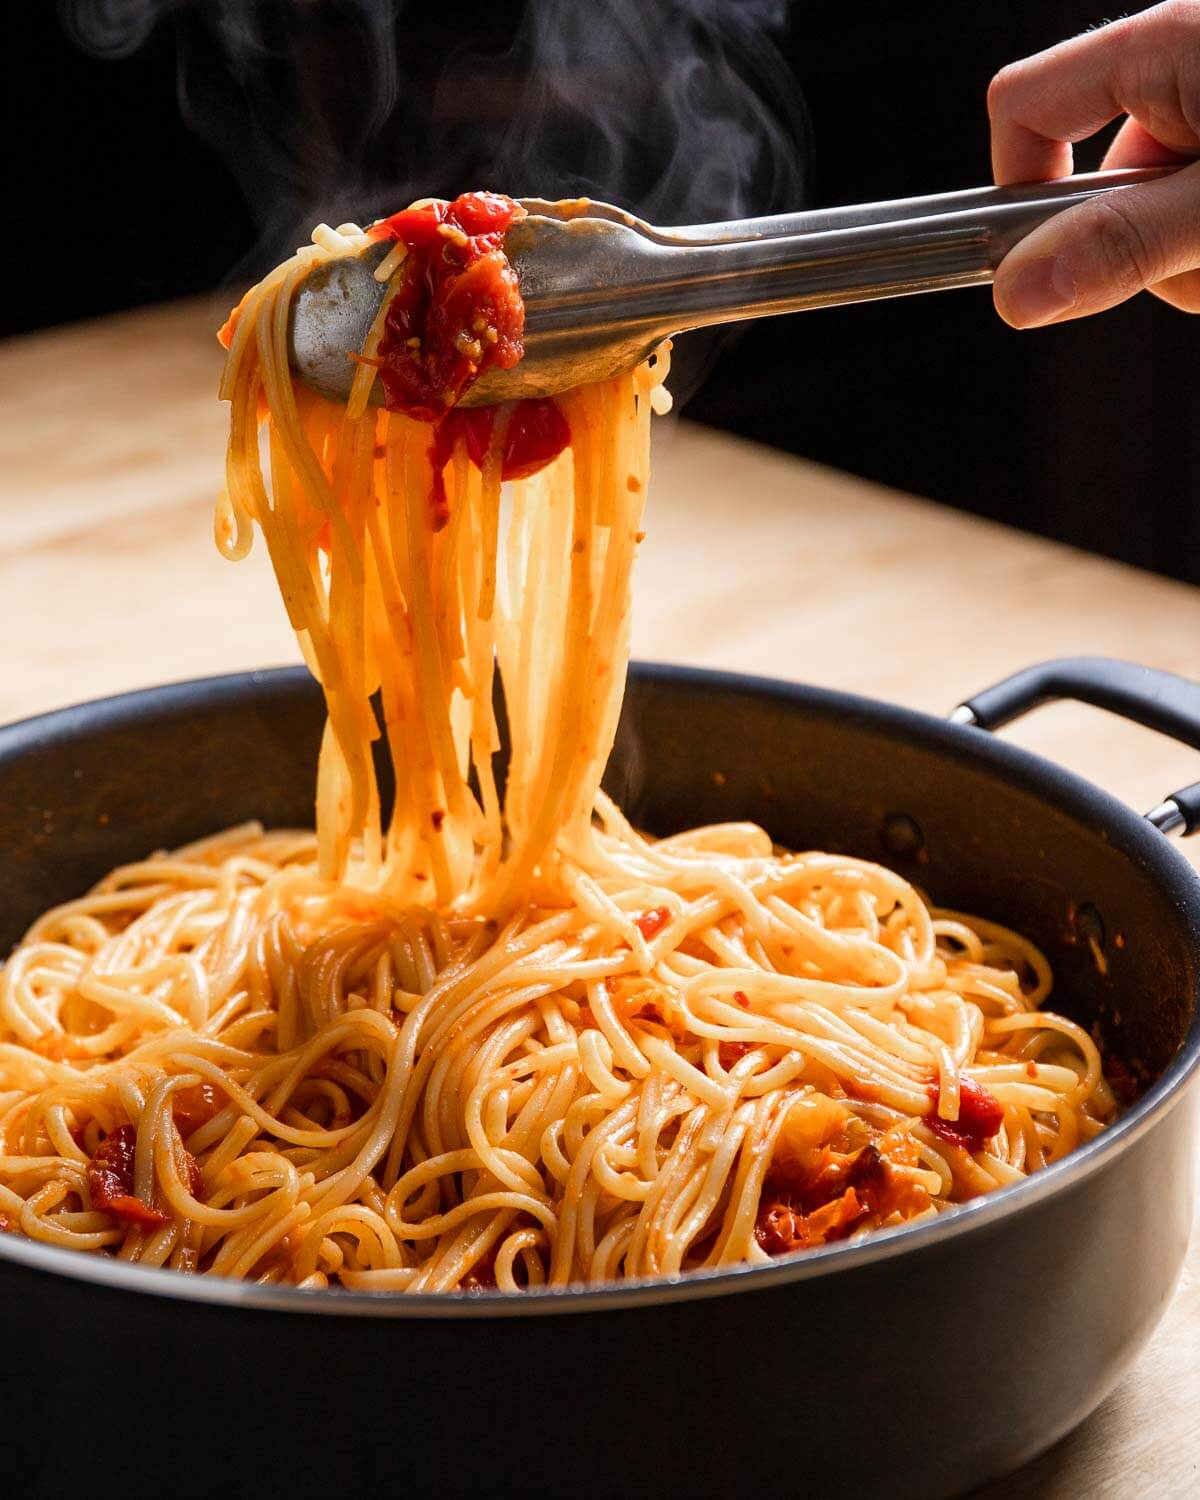 Tongs holding linguine with cherry tomato sauce over large pan.